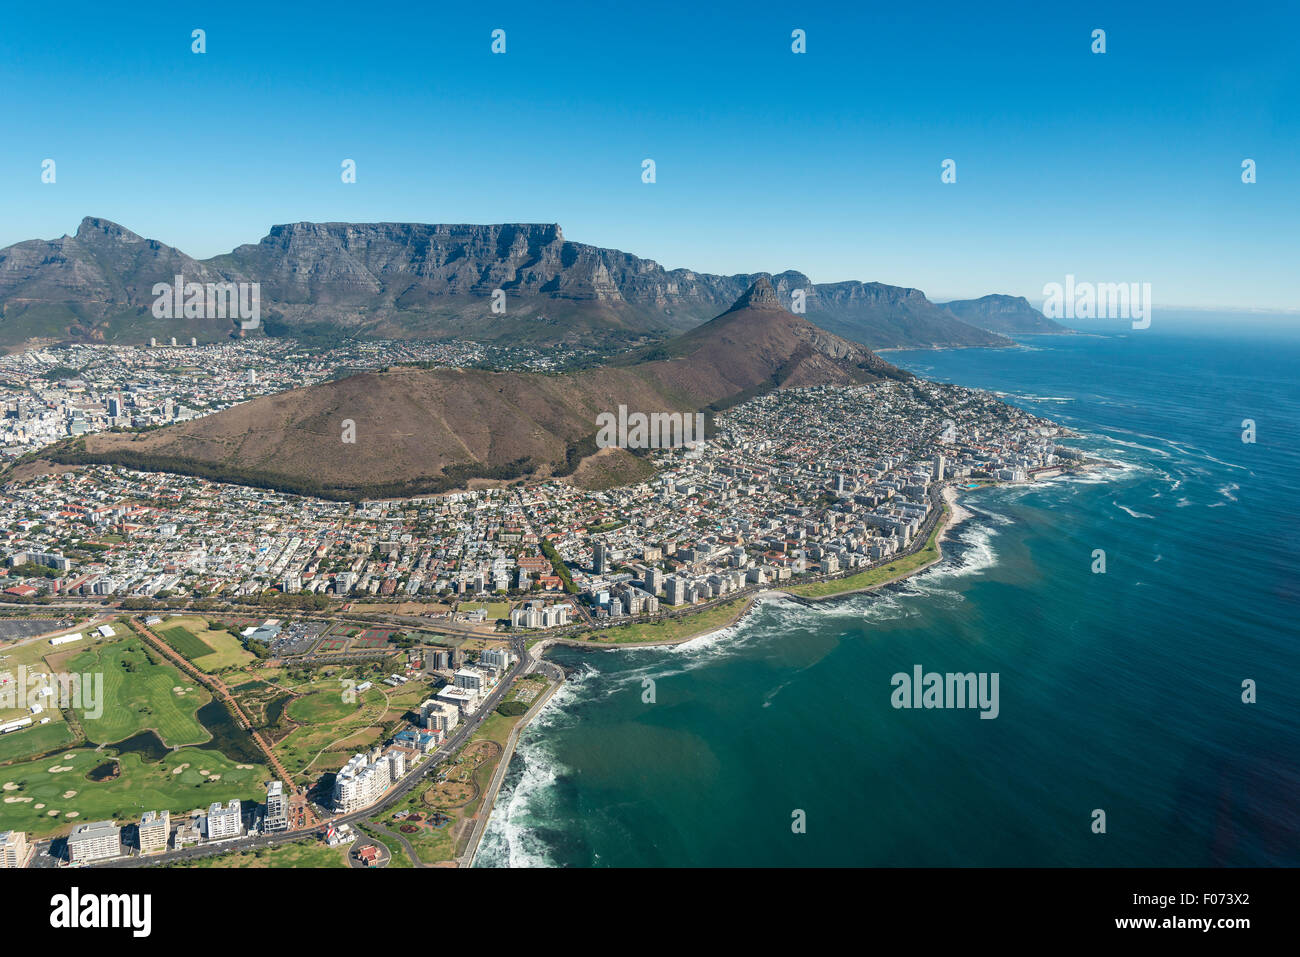 Aerial view of city and beaches, Cape Town, Western Cape Province, Republic of South Africa Stock Photo